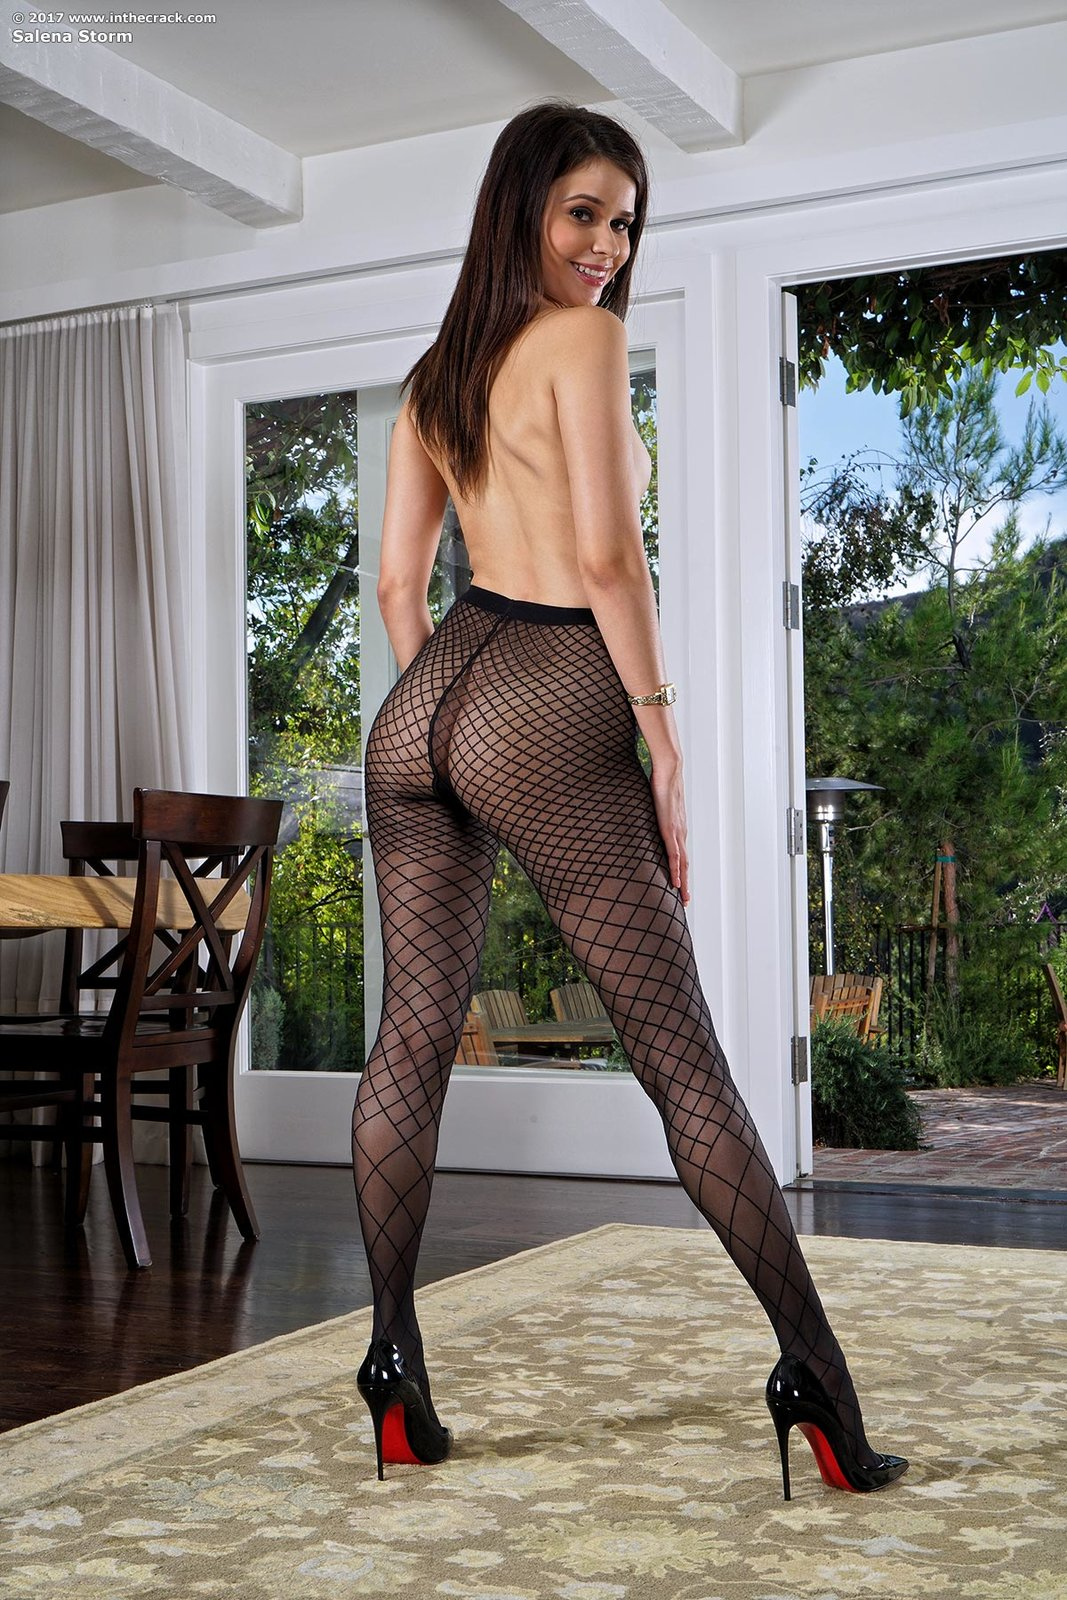 Salena Storm In Fishnets And Heels By In The Crack 15 -8605